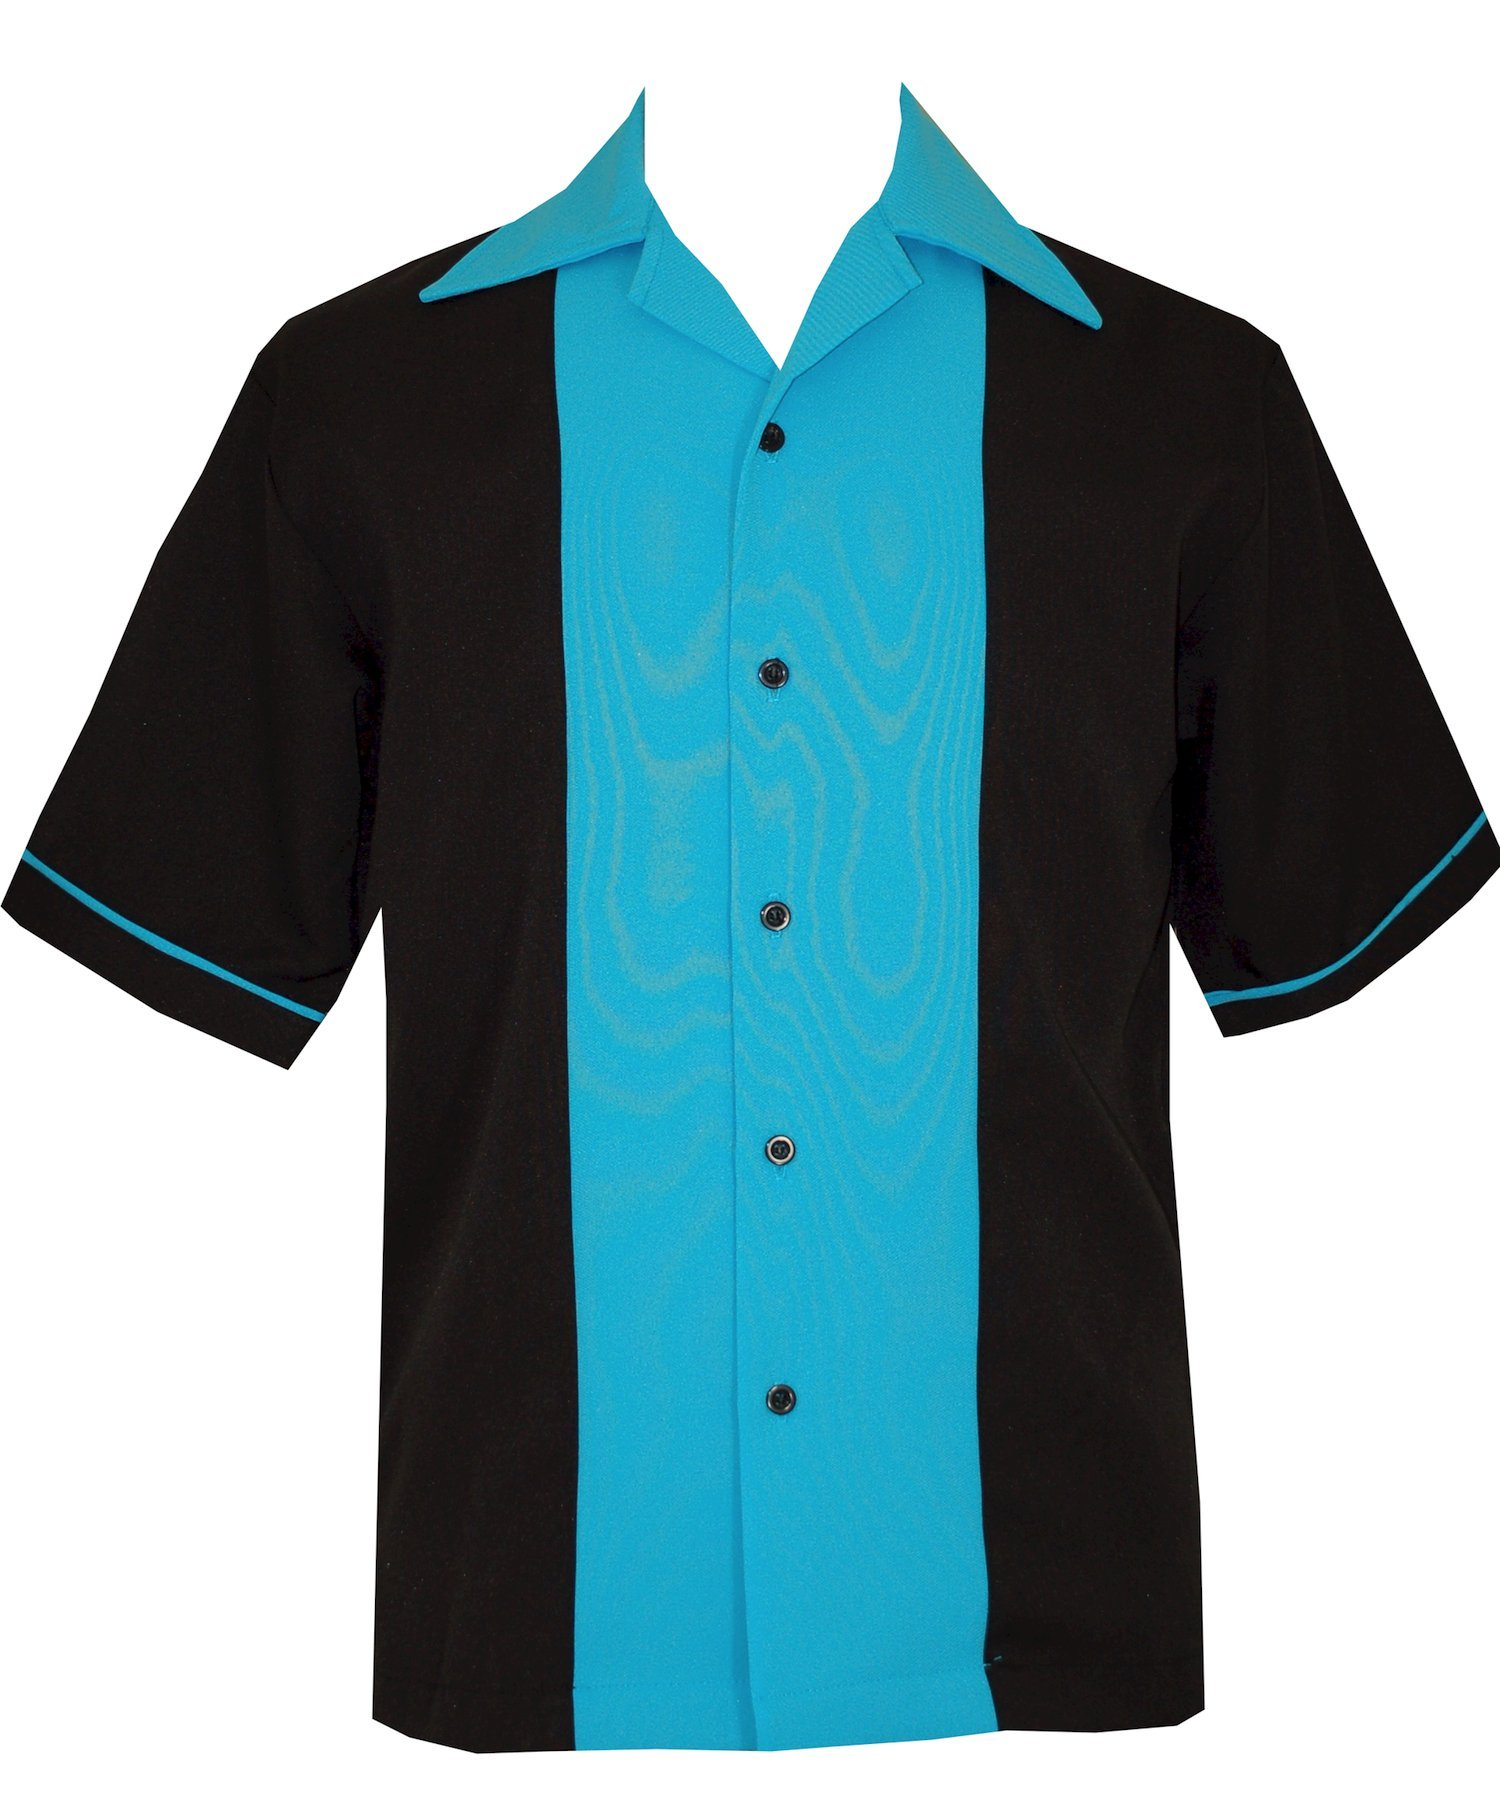 Bowling Retro Men's Short-Sleeve USA Made Shirt ~ 50's Classic (S) Turquoise by BeRetro